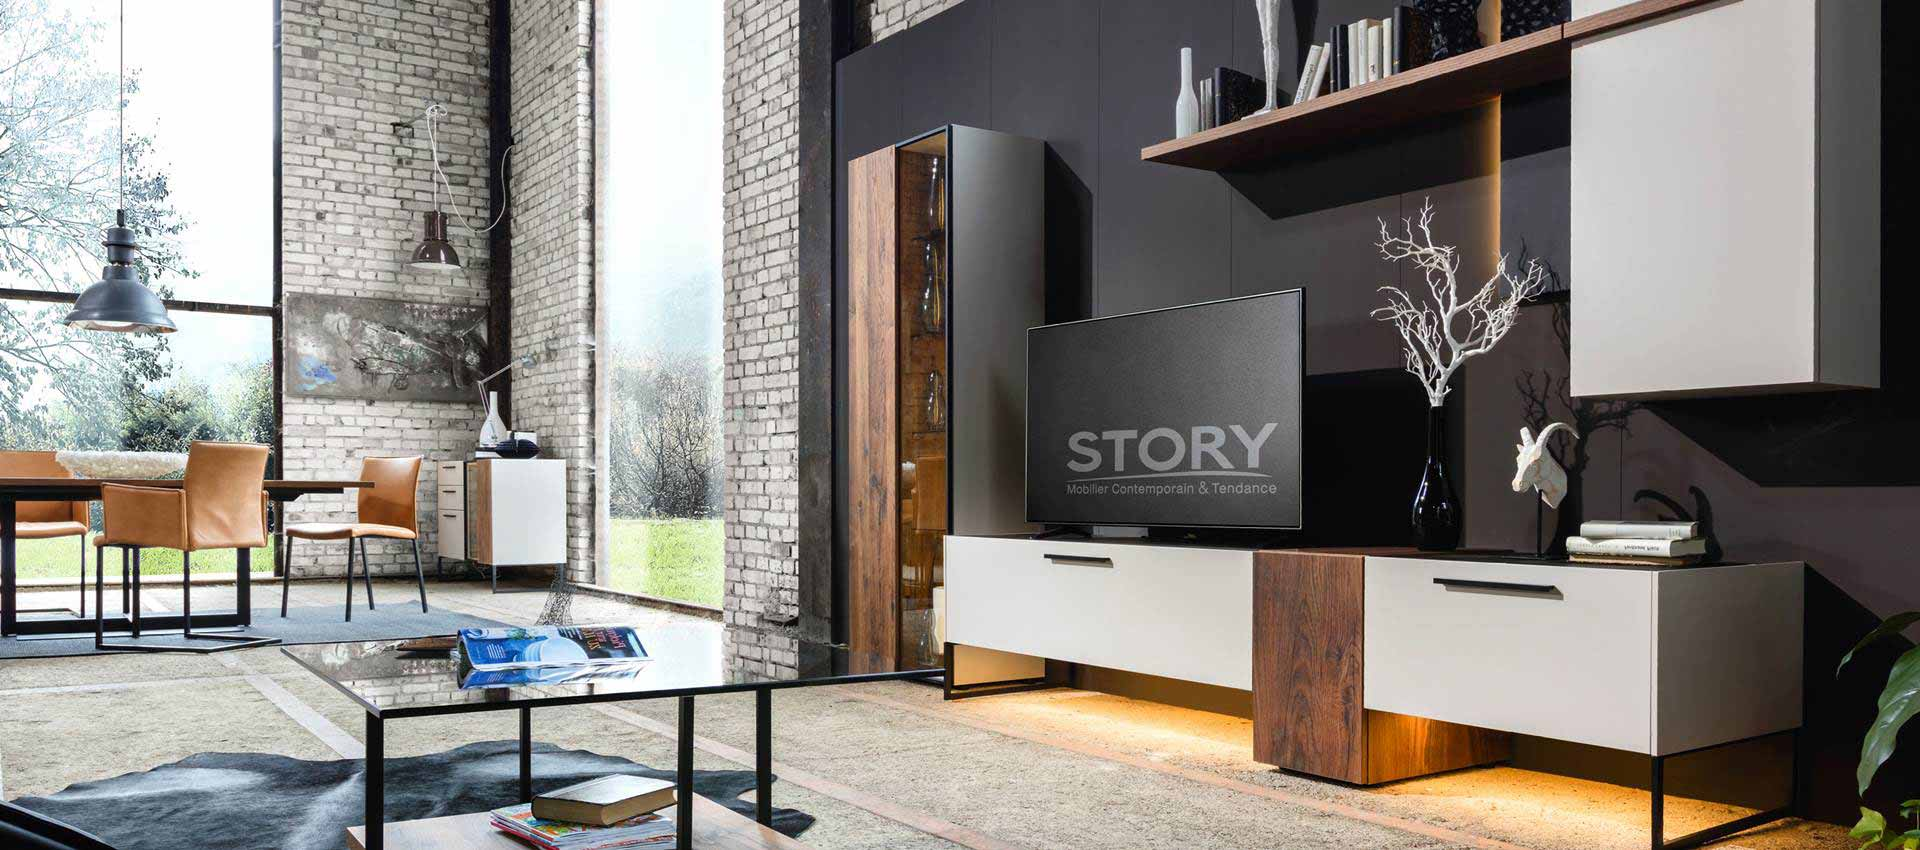 story mobilier contemporain et tendance salons s jours chambres. Black Bedroom Furniture Sets. Home Design Ideas